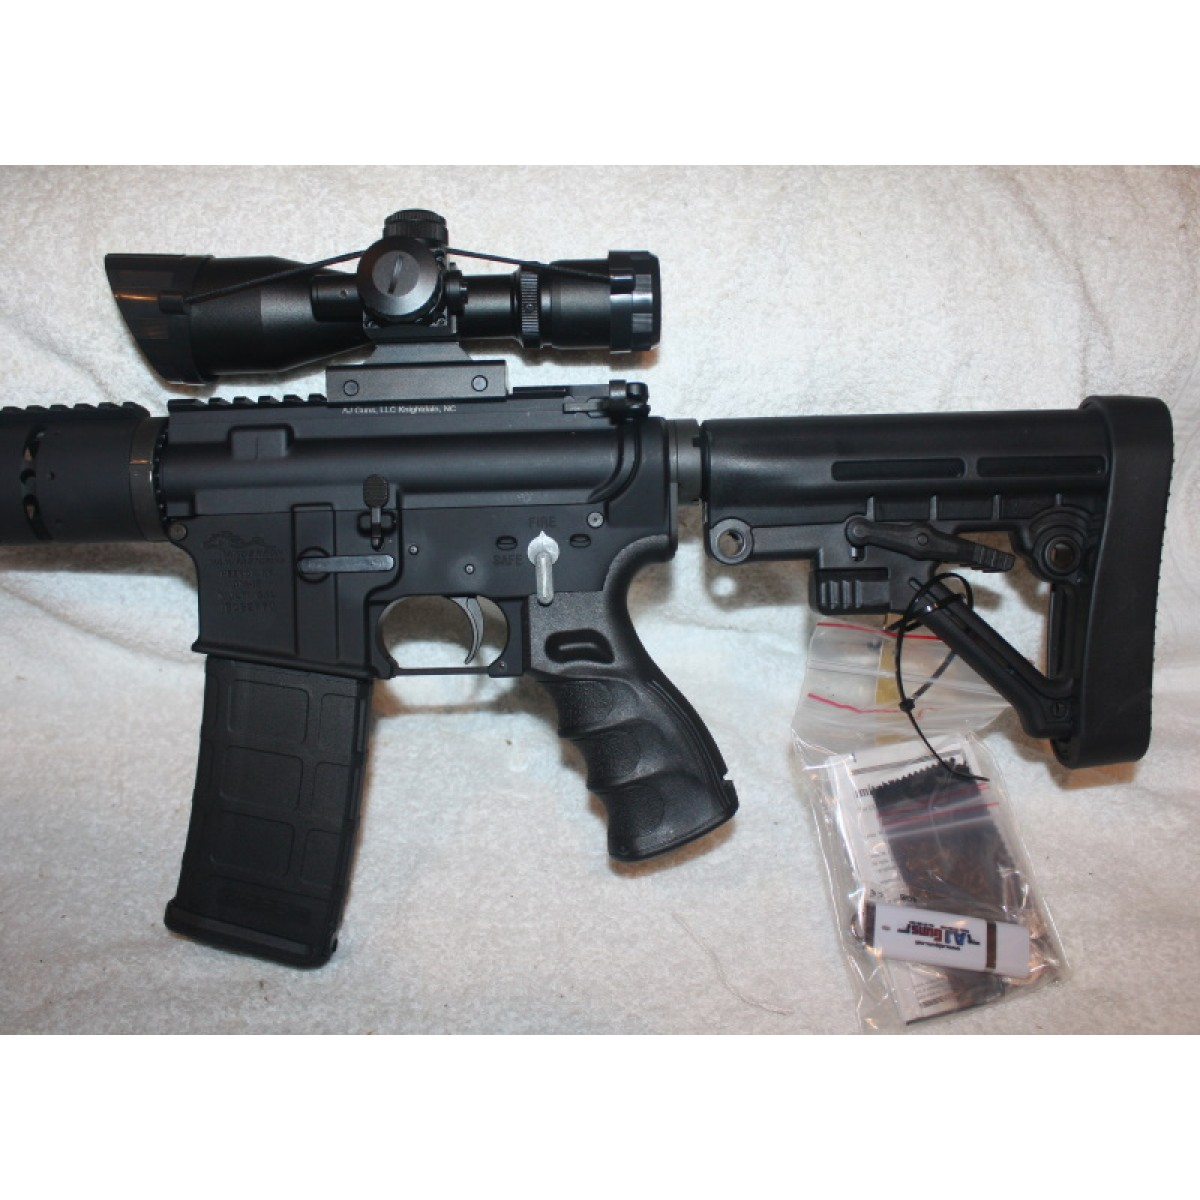 Anderson AR-15 Rifle, Caliber 300BLK, 16